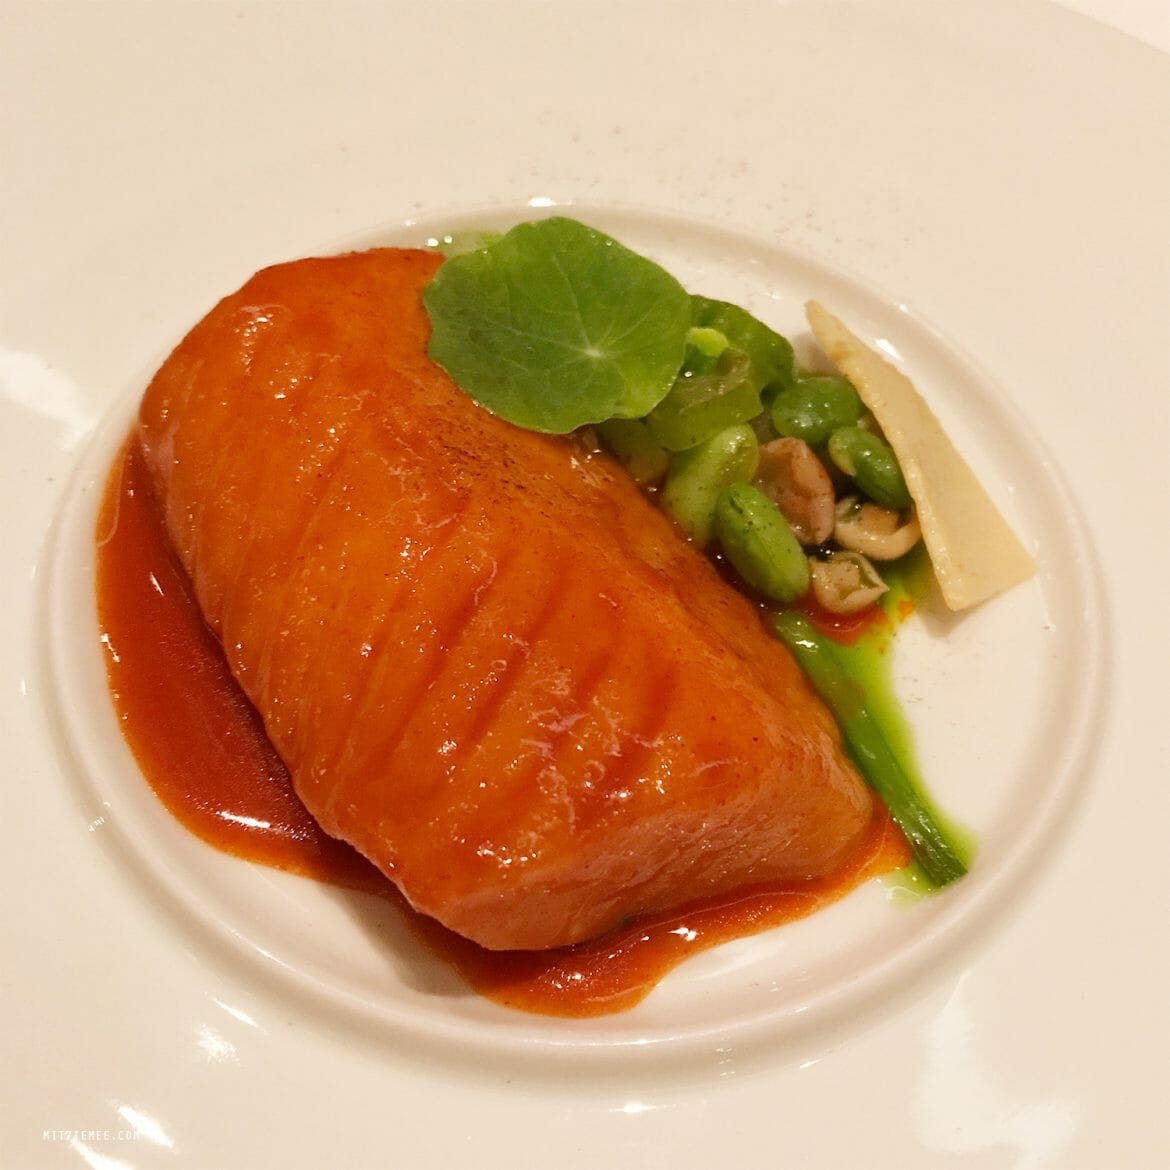 Black cod with red pepper soy and bamboo shot, Jungsik, New York City